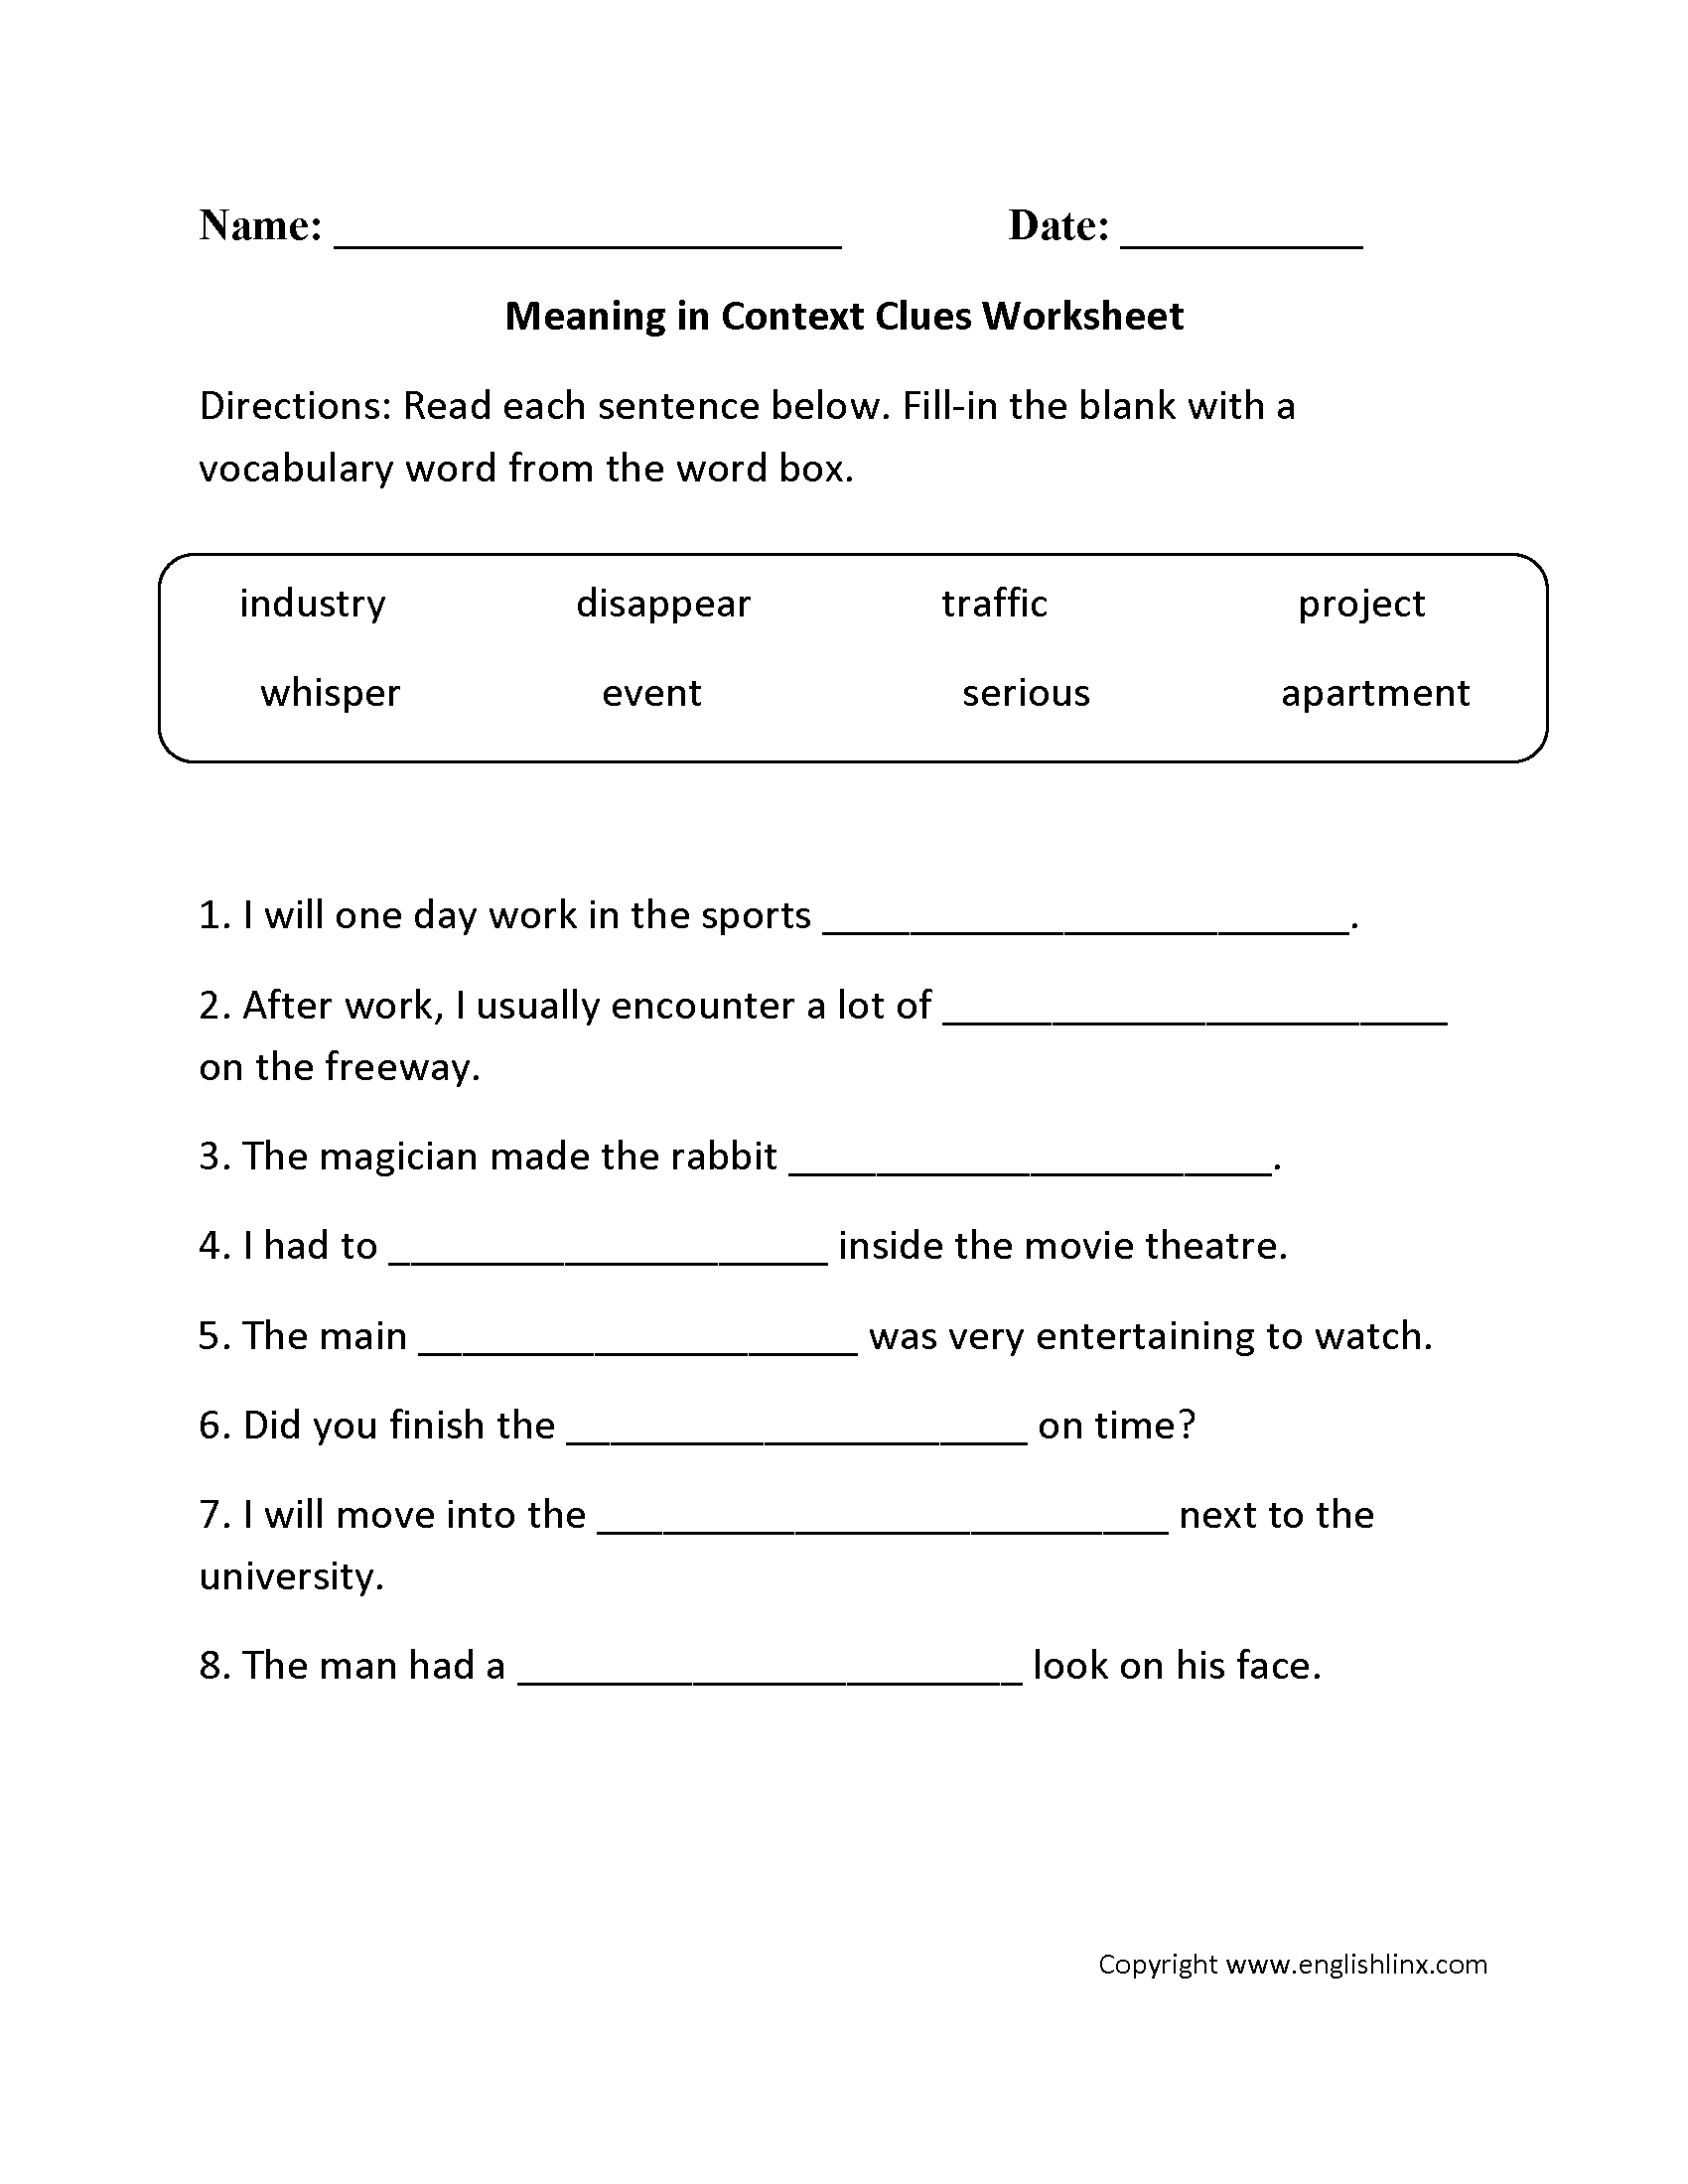 Worksheets Context Clues Worksheets 4th Grade reading worksheets context clues worksheet